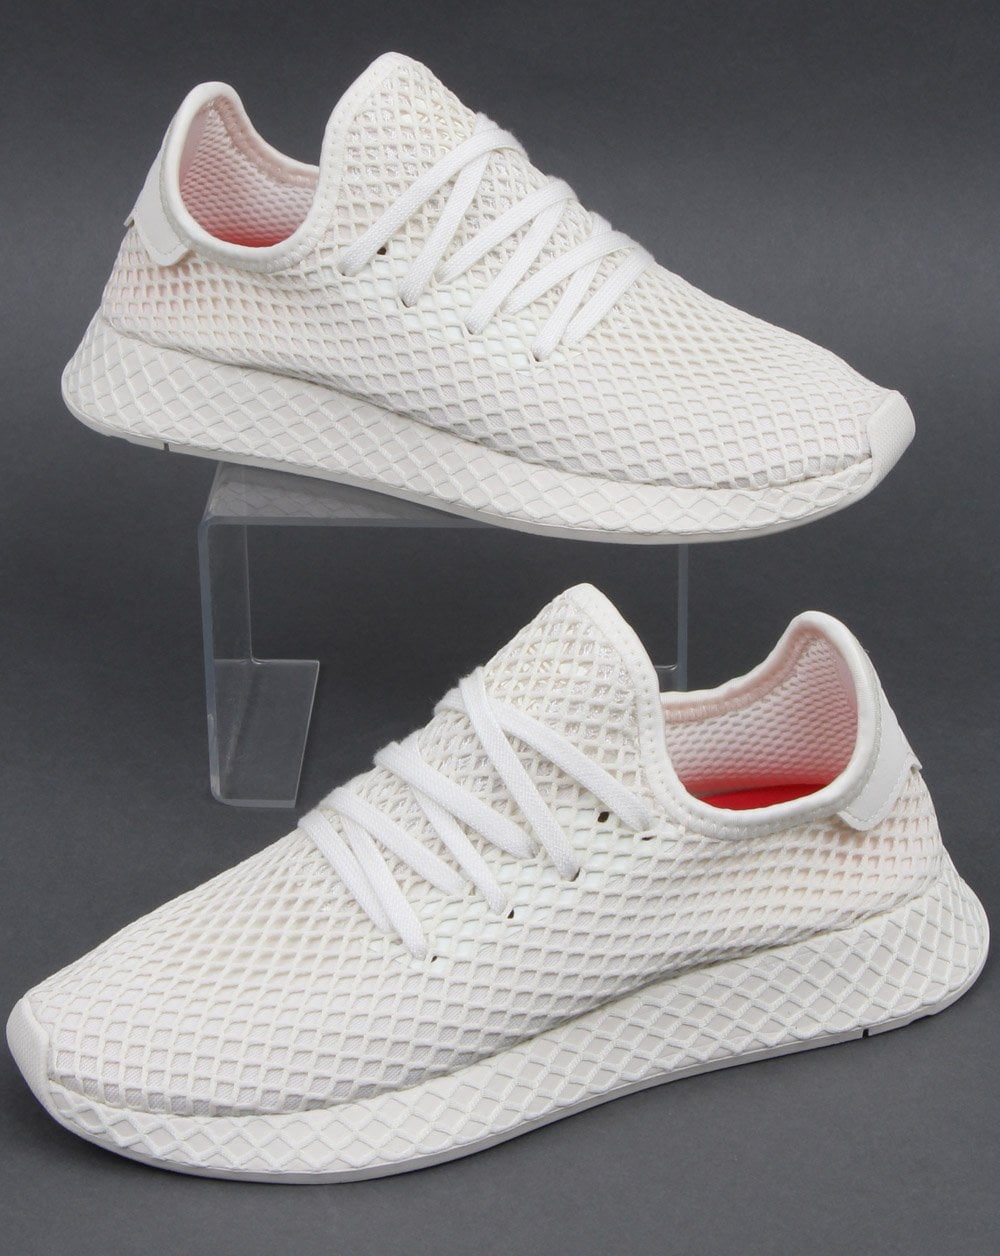 9d276065 Adidas Deerupt Comfort Trainers White/Shock Red